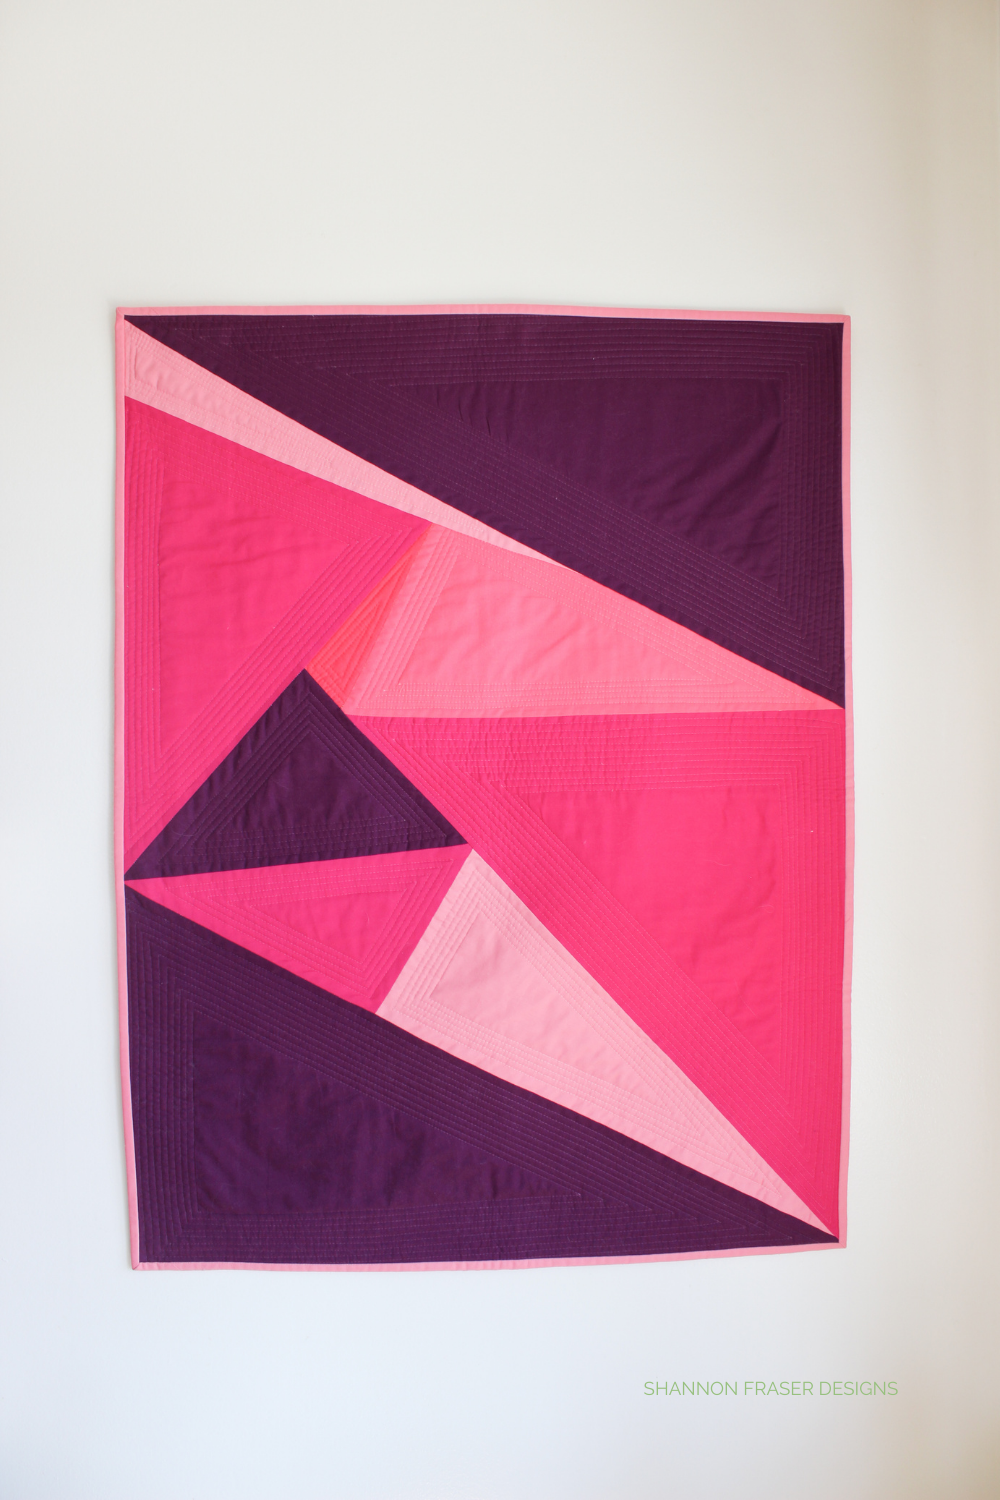 One Hundred and Eighty Degrees Quilt hanging on the wall | Shannon Fraser Designs #sewsolids #solidsquilt #modernwallart